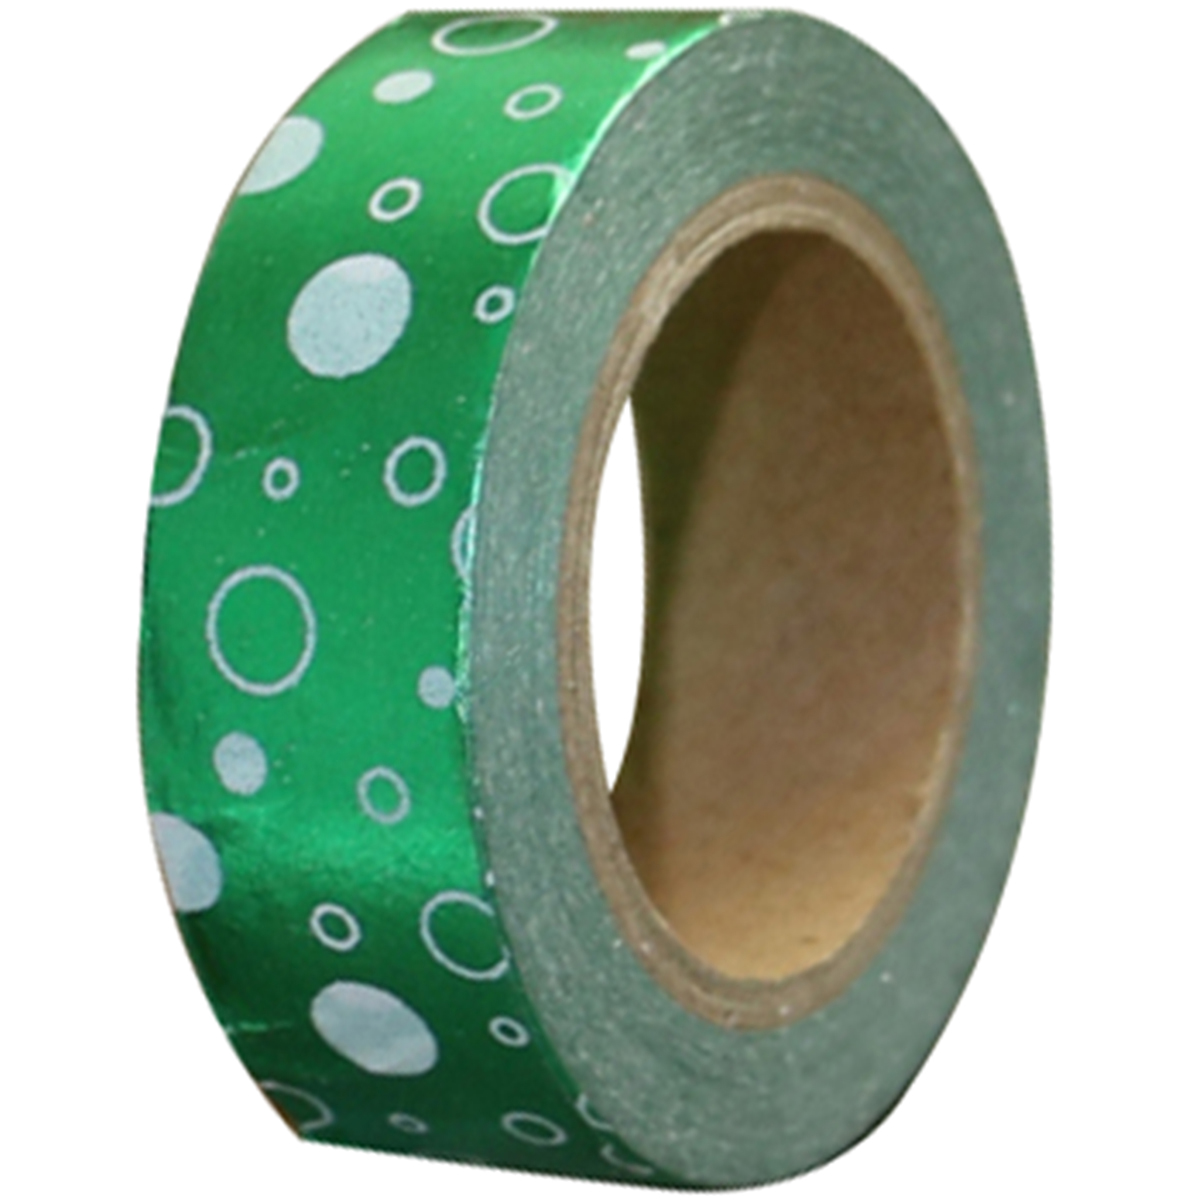 Love My Tapes Foil Washi Tape 15mmx10m-Green White Dots